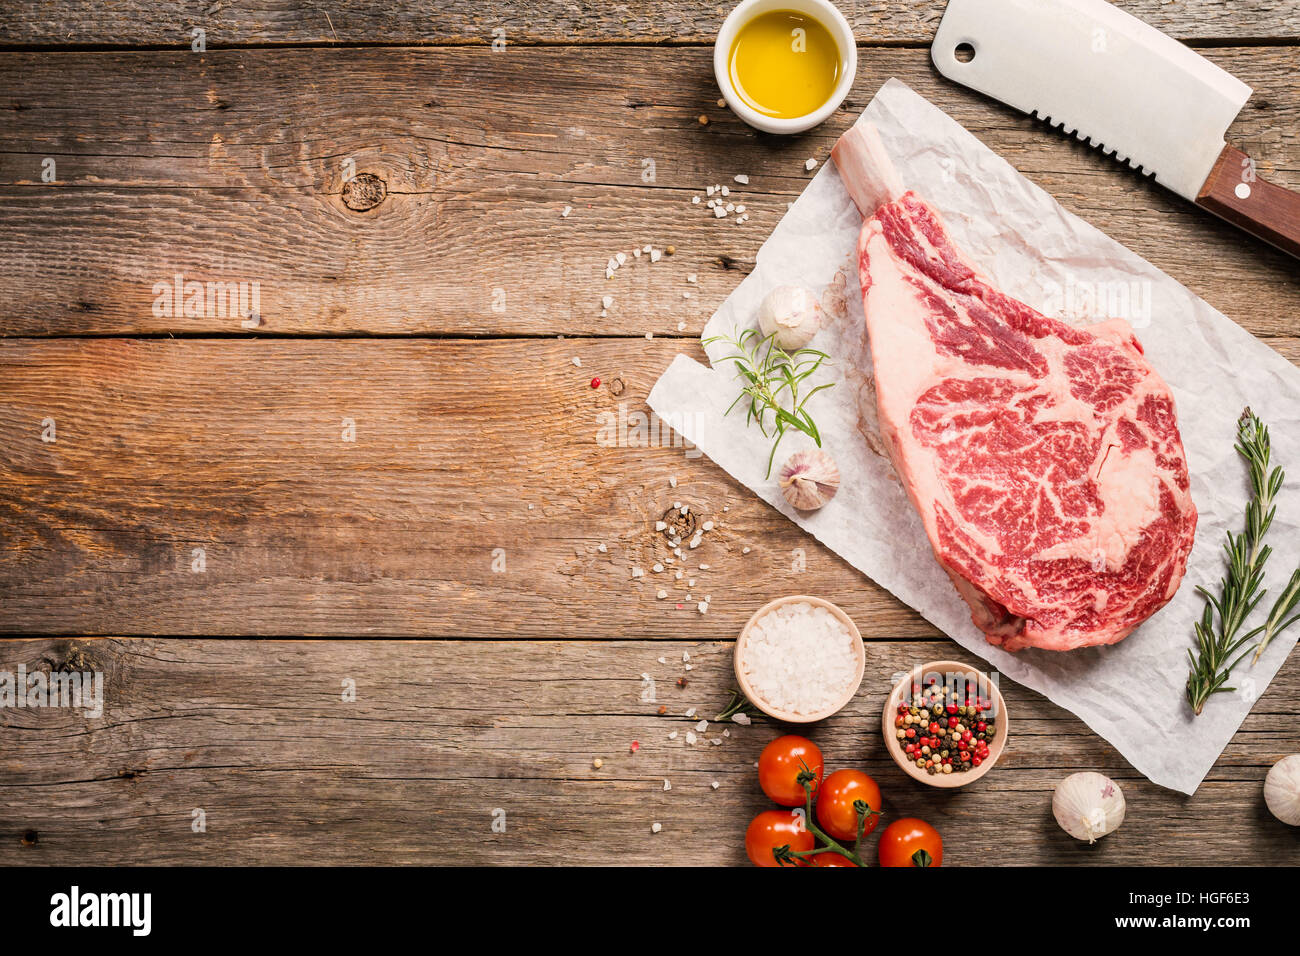 Raw tomahawk beef steak with ingredients for grilling: seasoning, fresh rosemary and olive oil on wooden background, - Stock Image